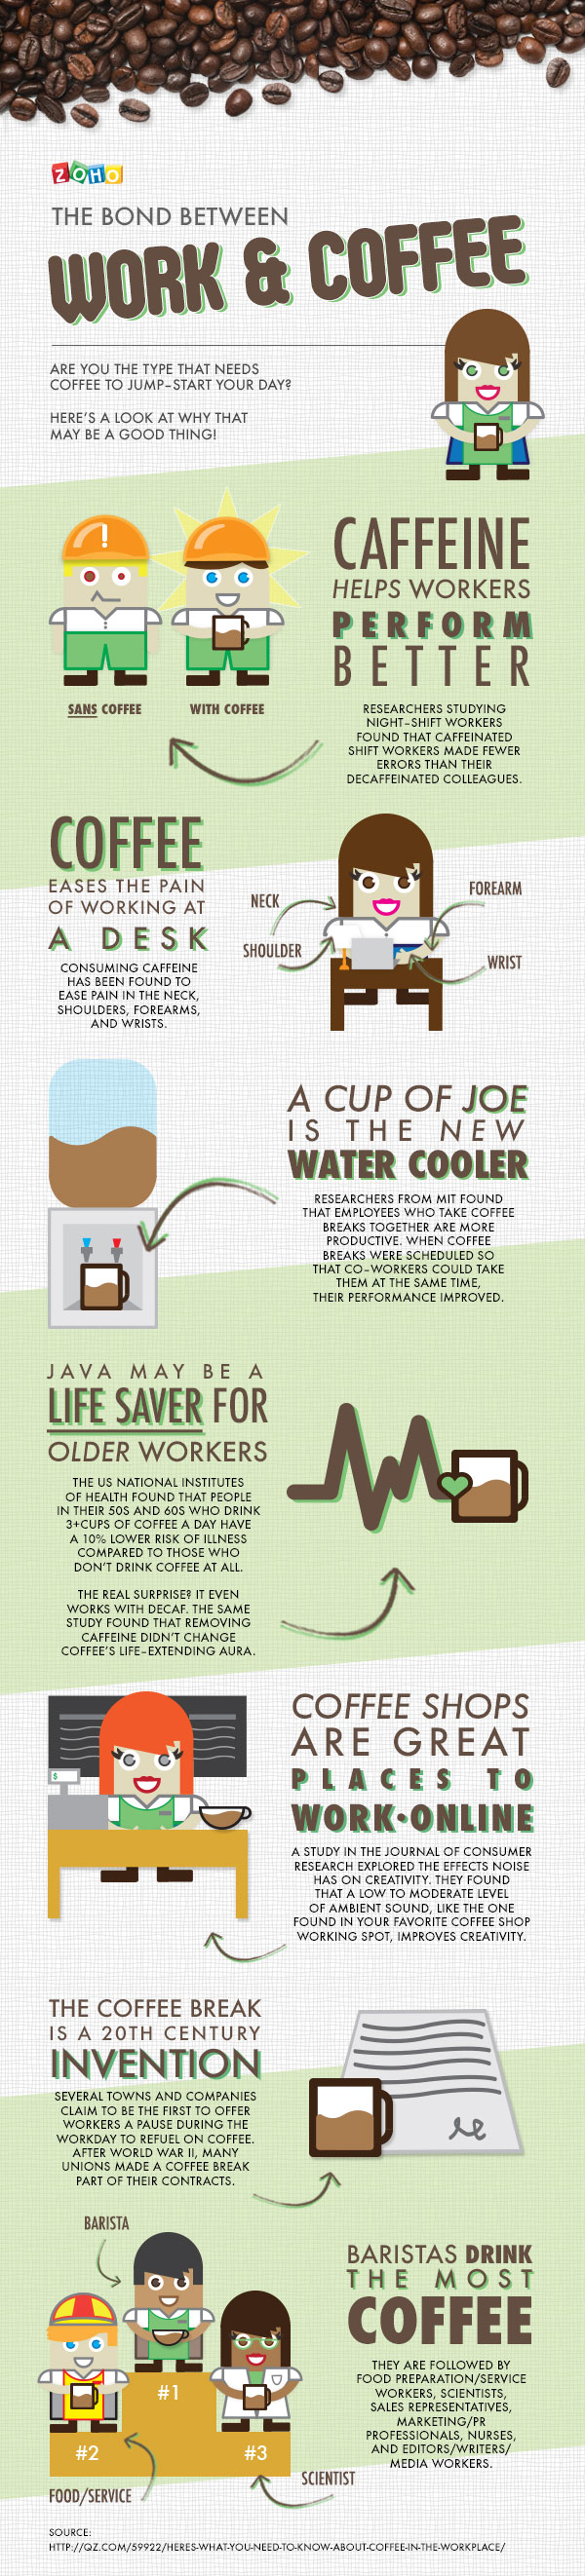 benefits-of-drinking-coffee